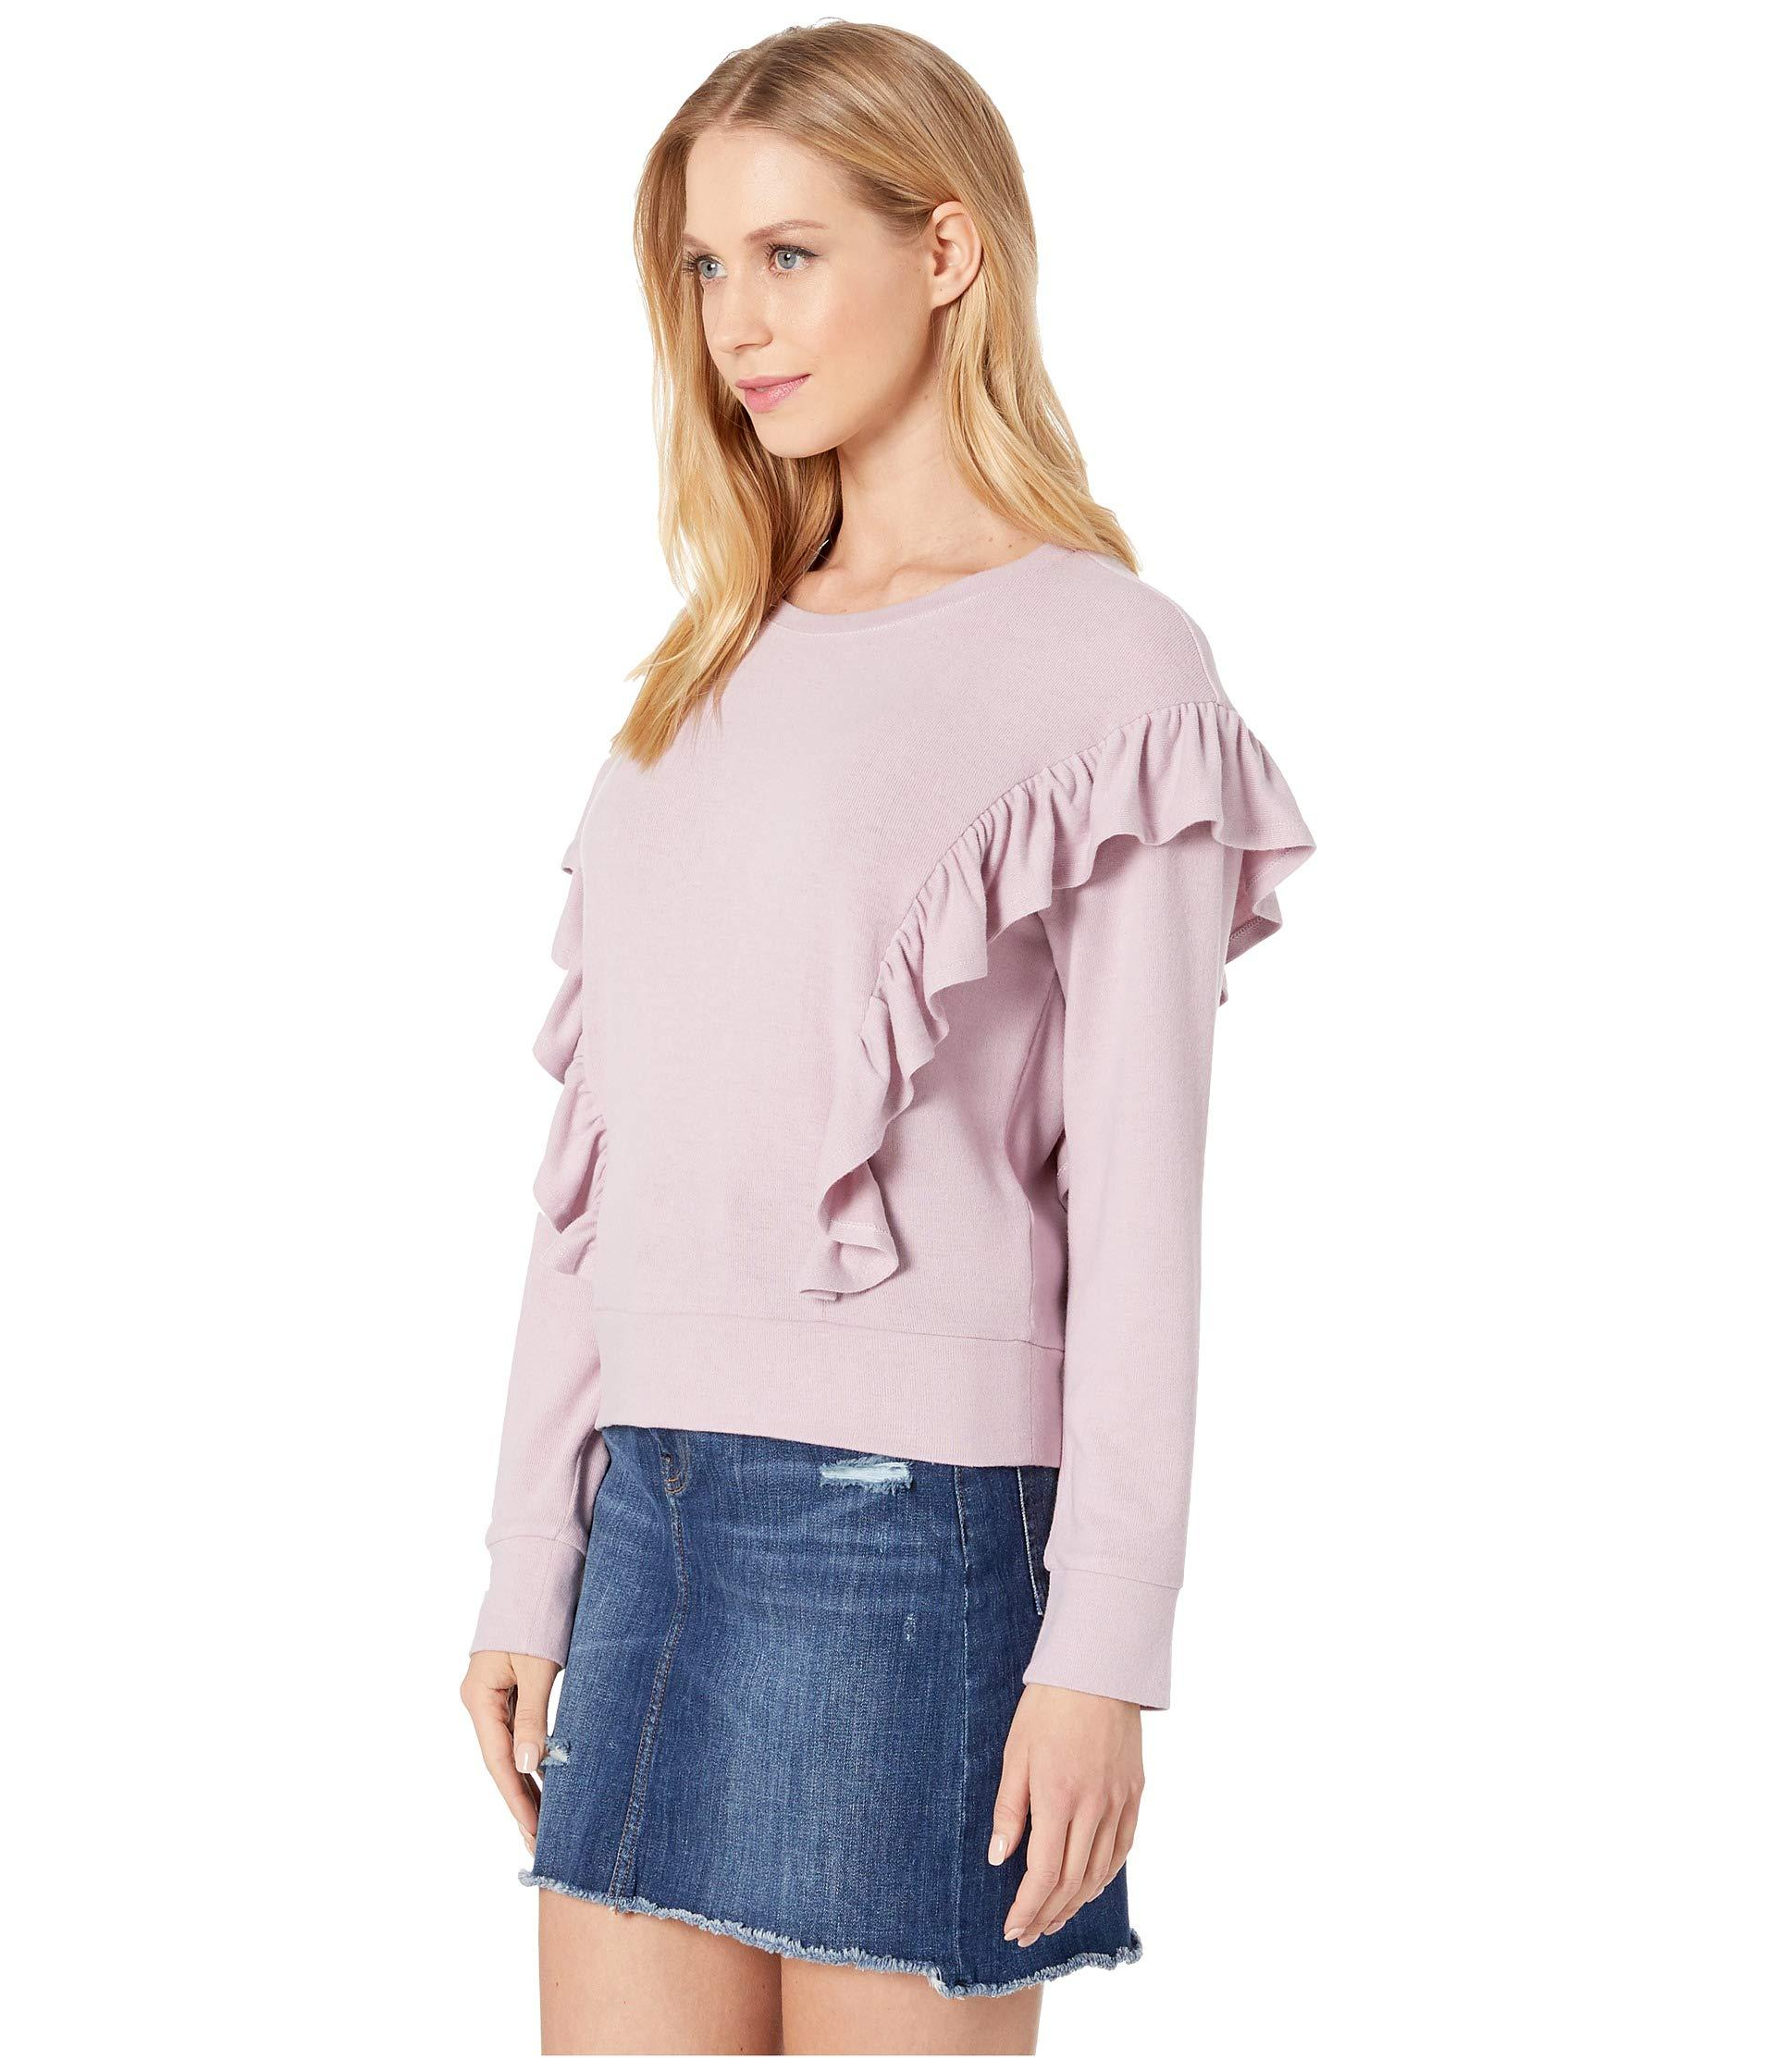 ef4b4127 Lyst - Cupcakes And Cashmere Primrose Ruffle Knit Top (dawn Pink) Women's  Clothing in Pink